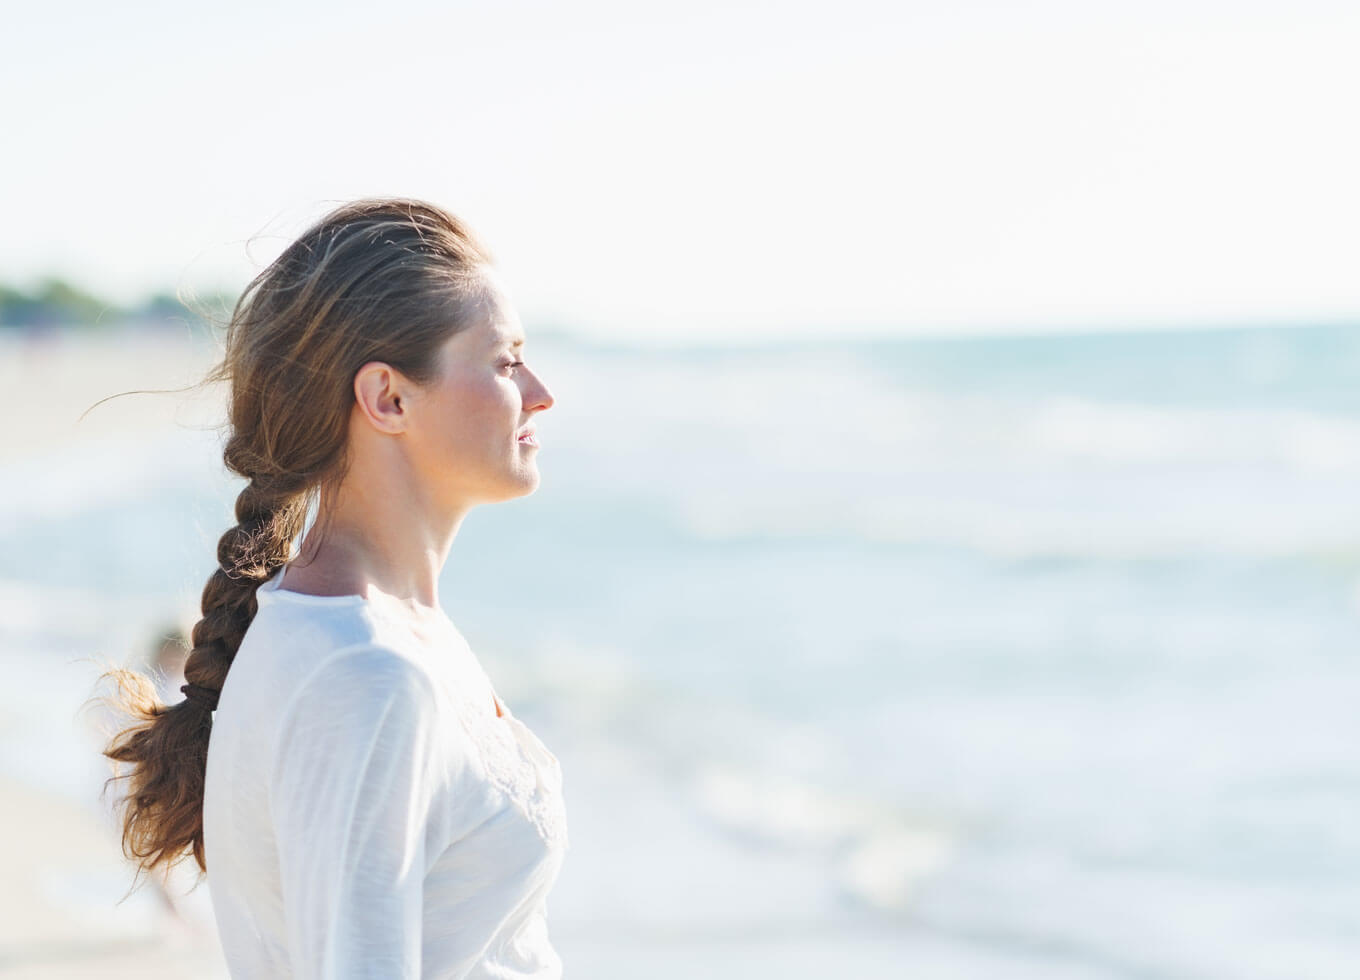 Woman looking out to ocean